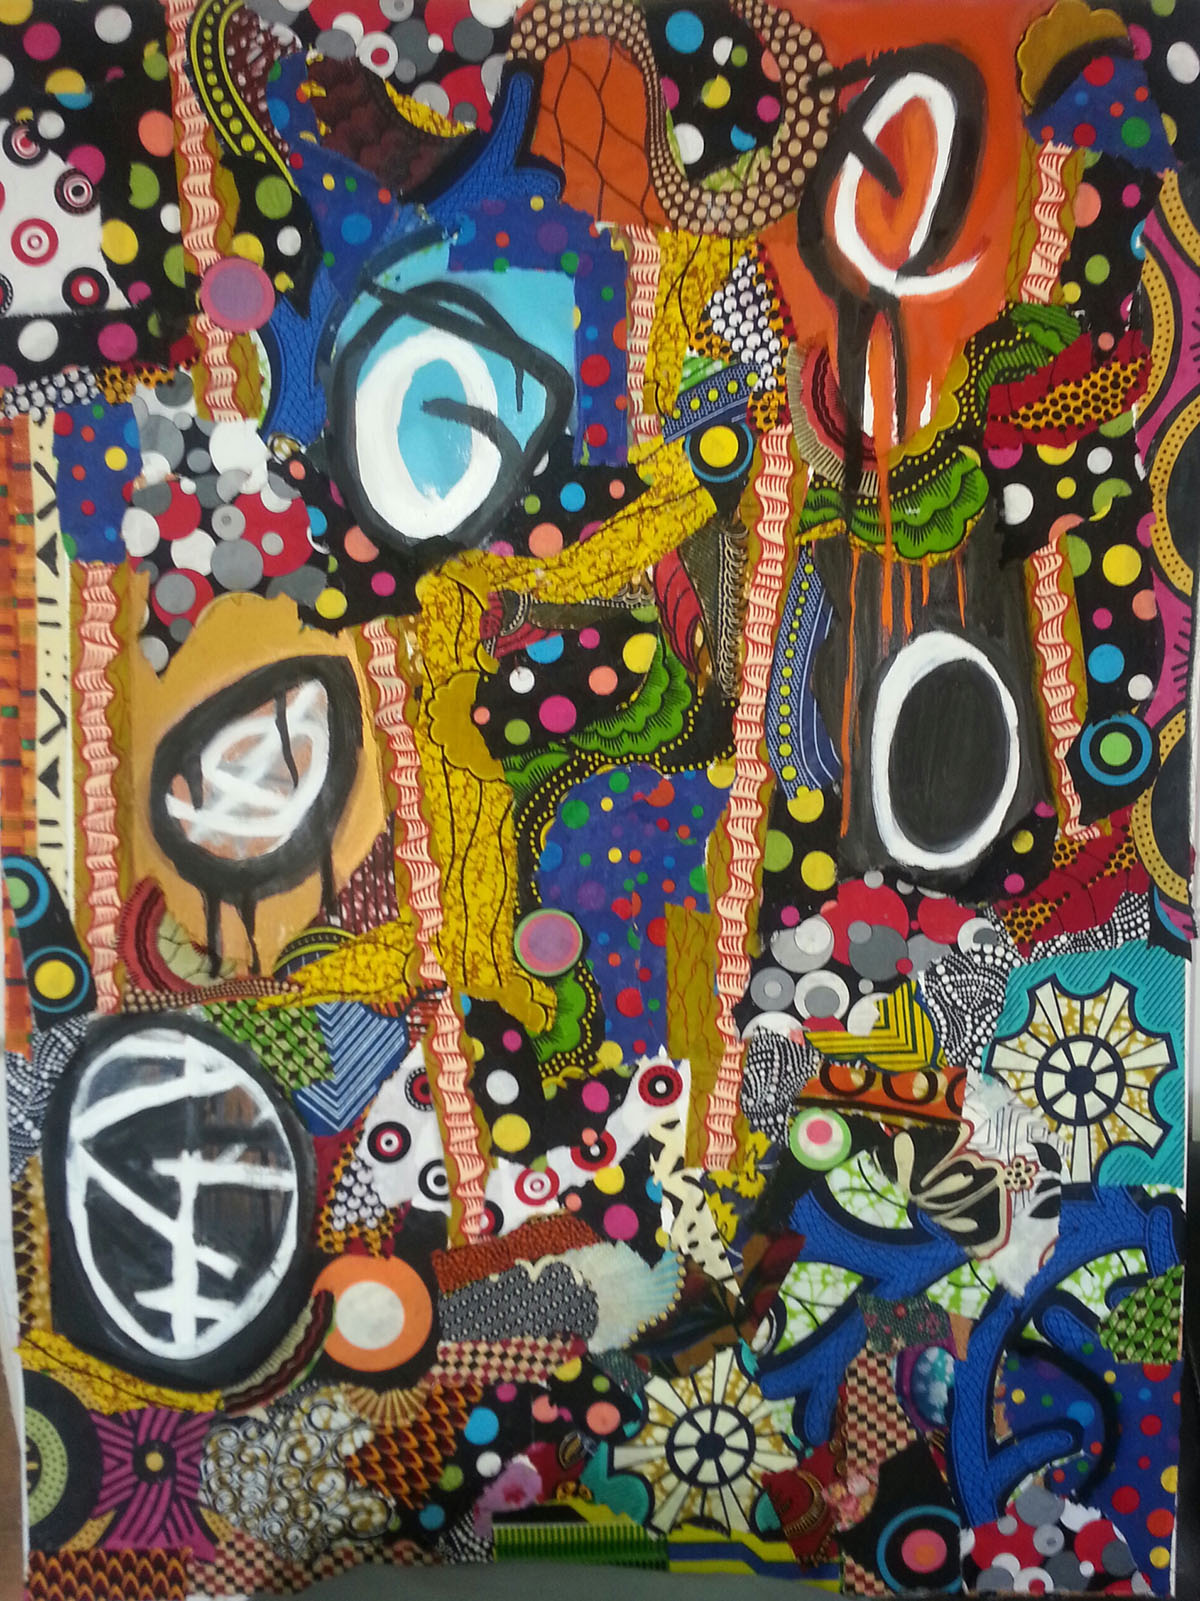 Danny Simmons - 'Lifted' 36 x 48 Textile and Oil on Canvas 2014